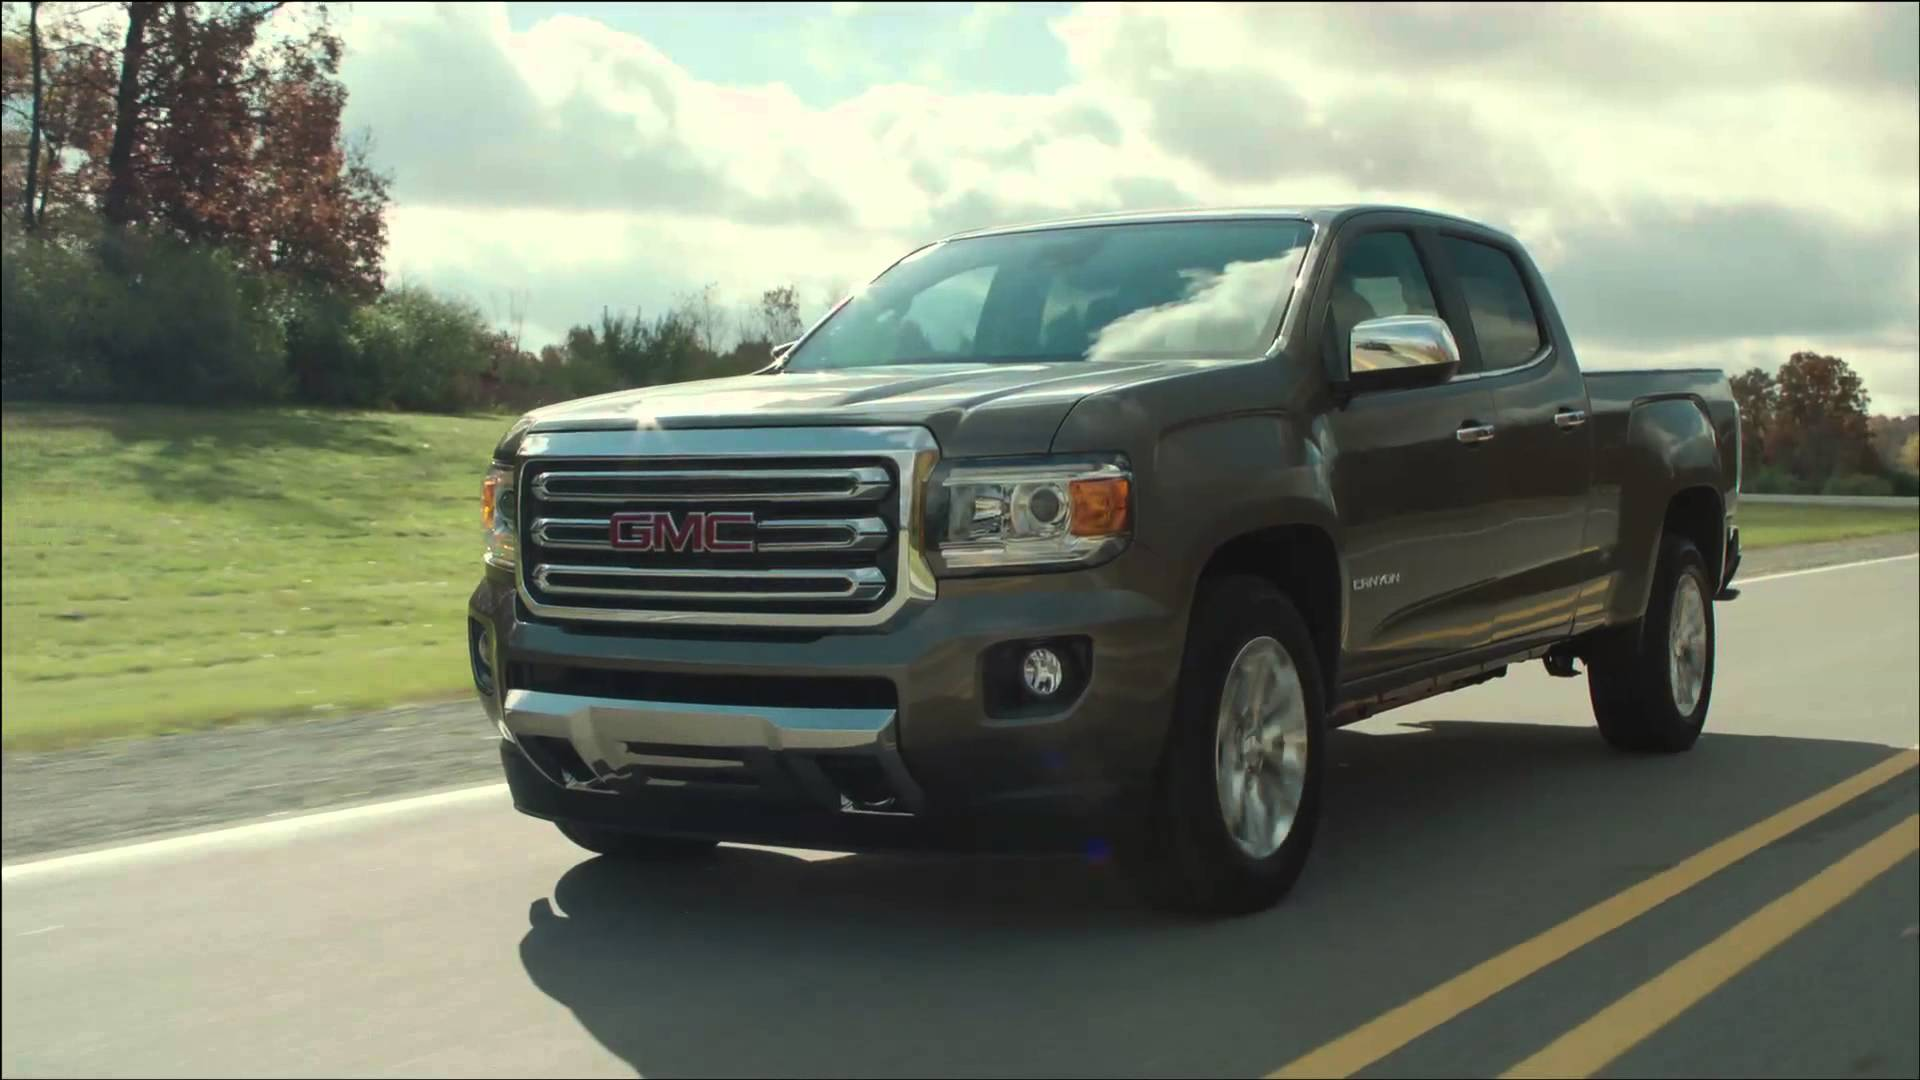 2015 Gmc Canyon Performance (Photo 6 of 6)